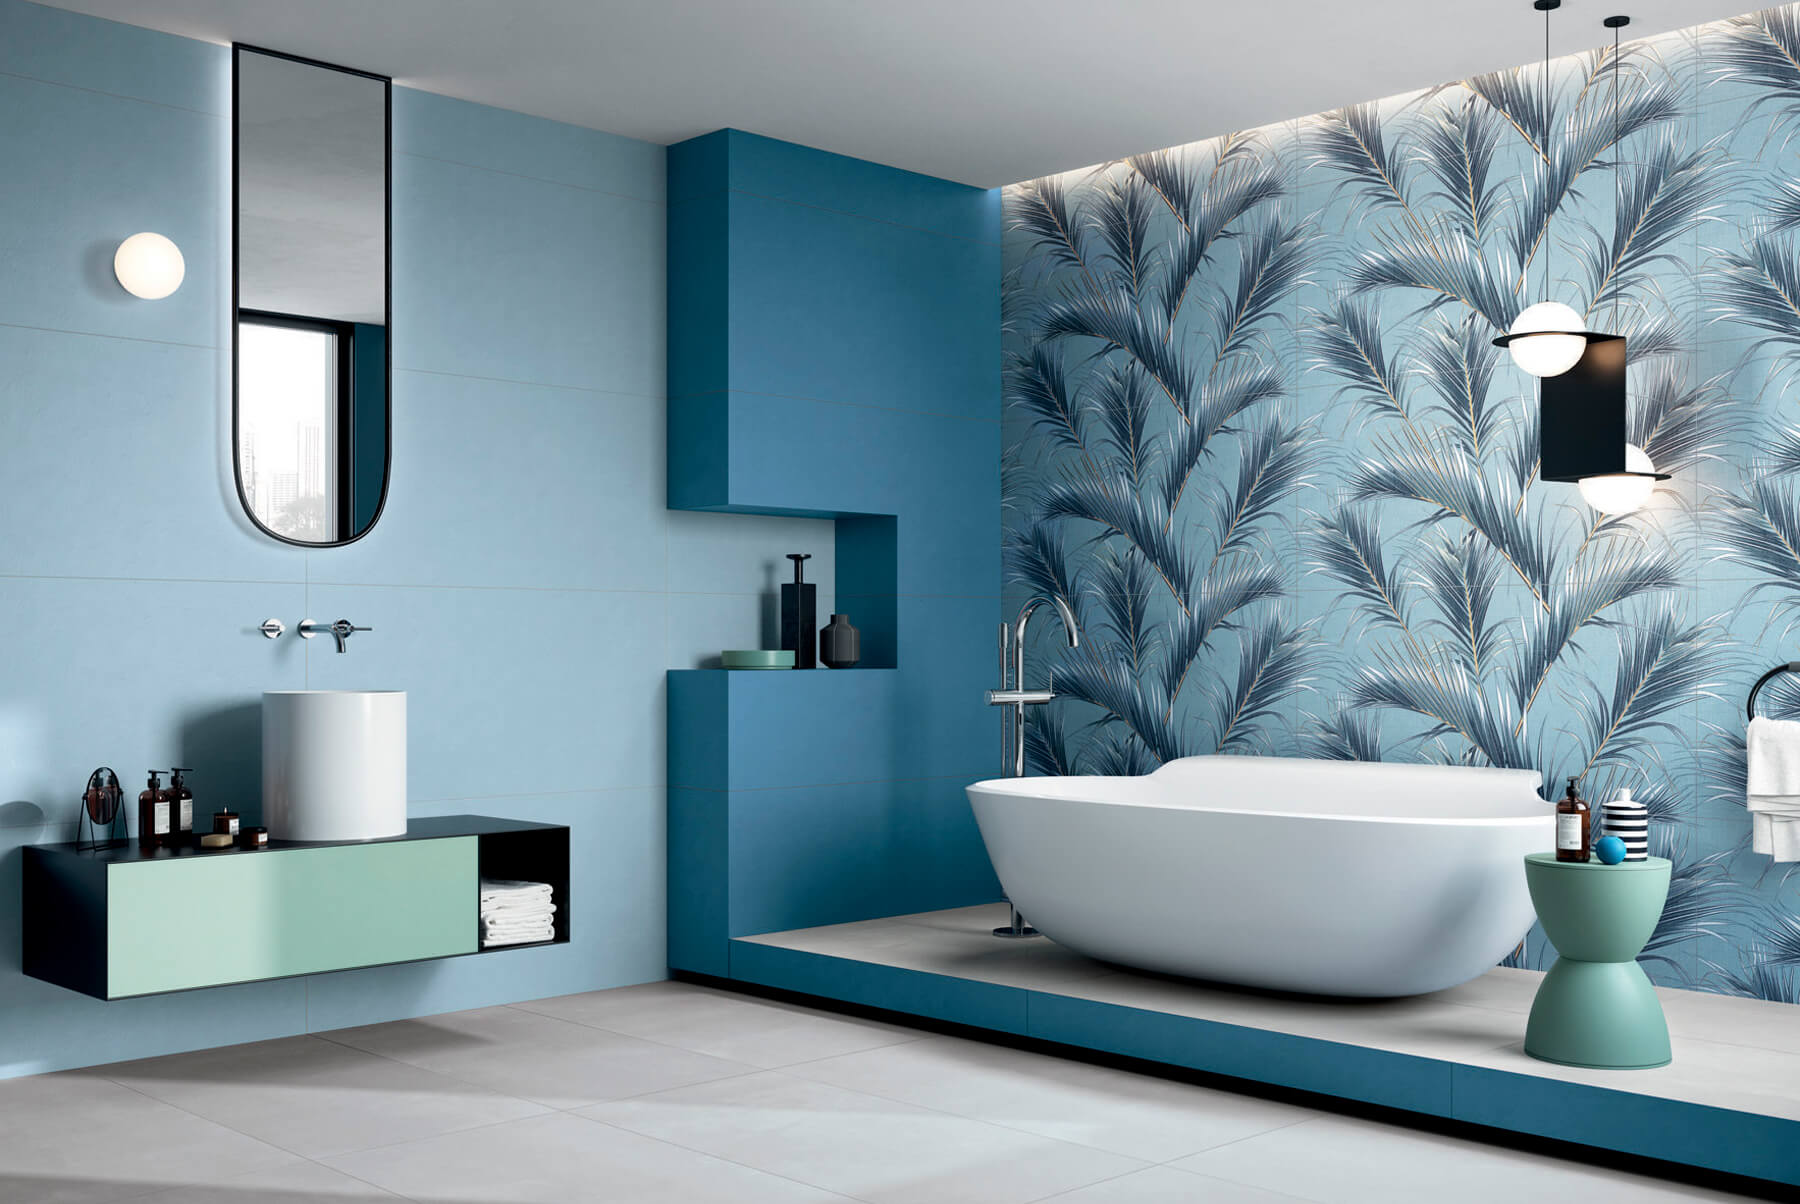 TILES-WIDE-&-STYLE-MINI-INSET-451800x1204